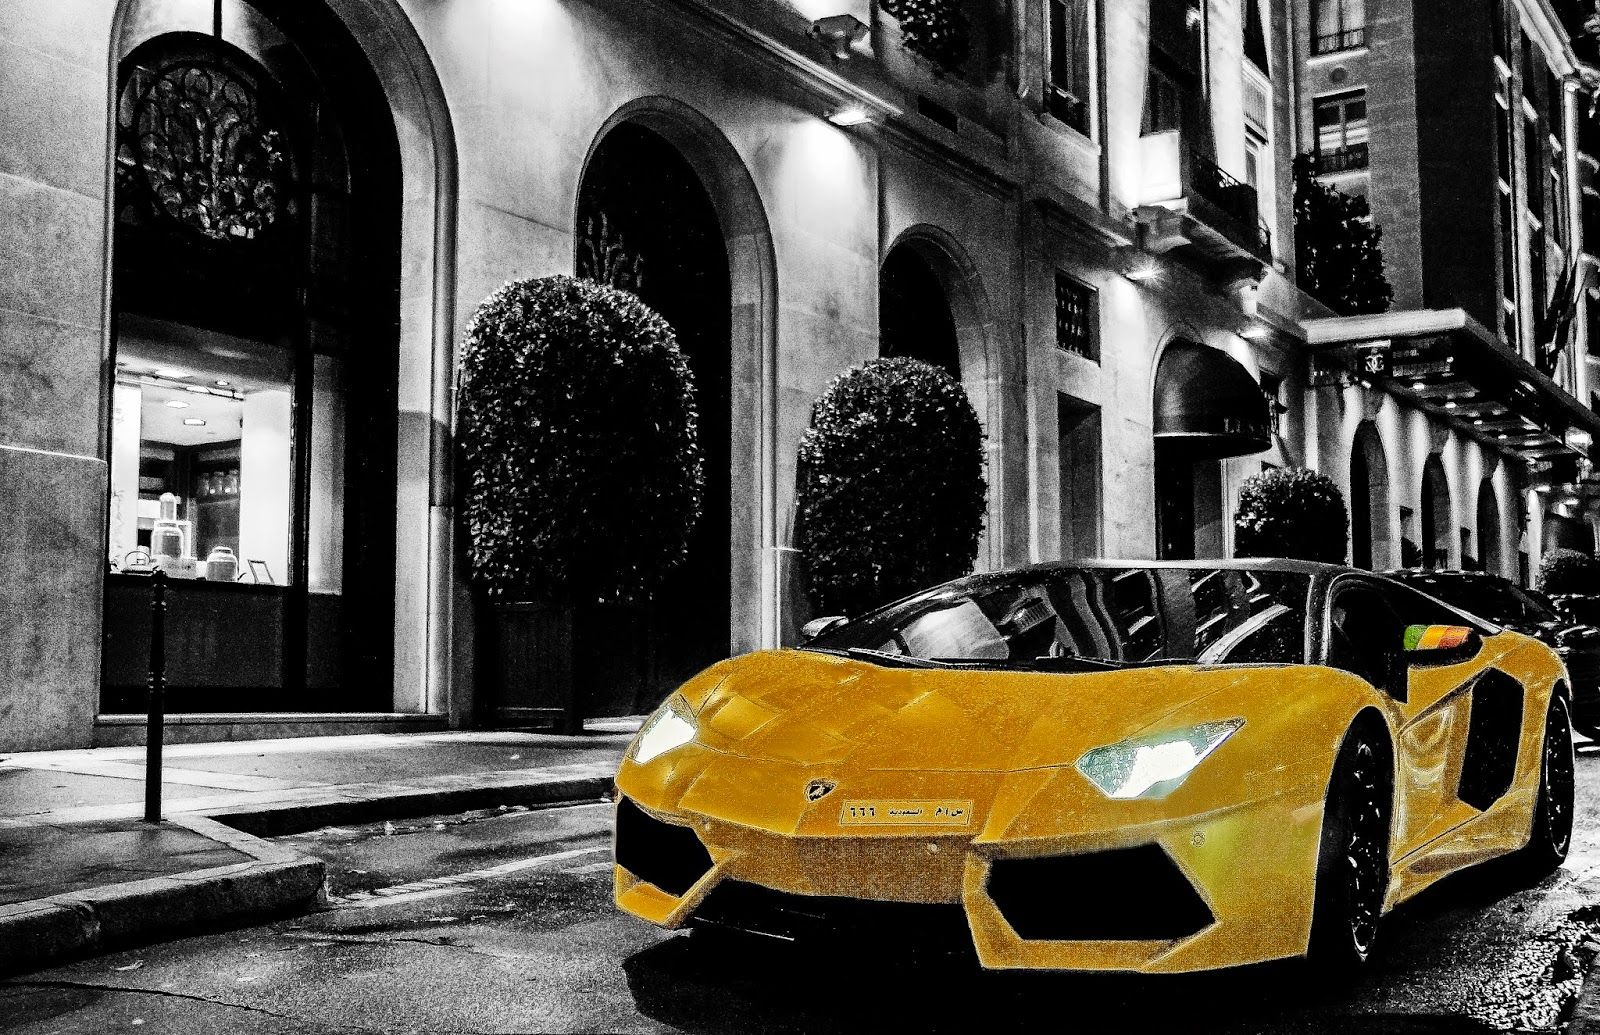 Lamborghini Aventador Wallpaper High Resolution Cars Hd Wallpaper And Desktop Background Sp Lamborghini Aventador Wallpaper Lamborghini Aventador Lamborghini